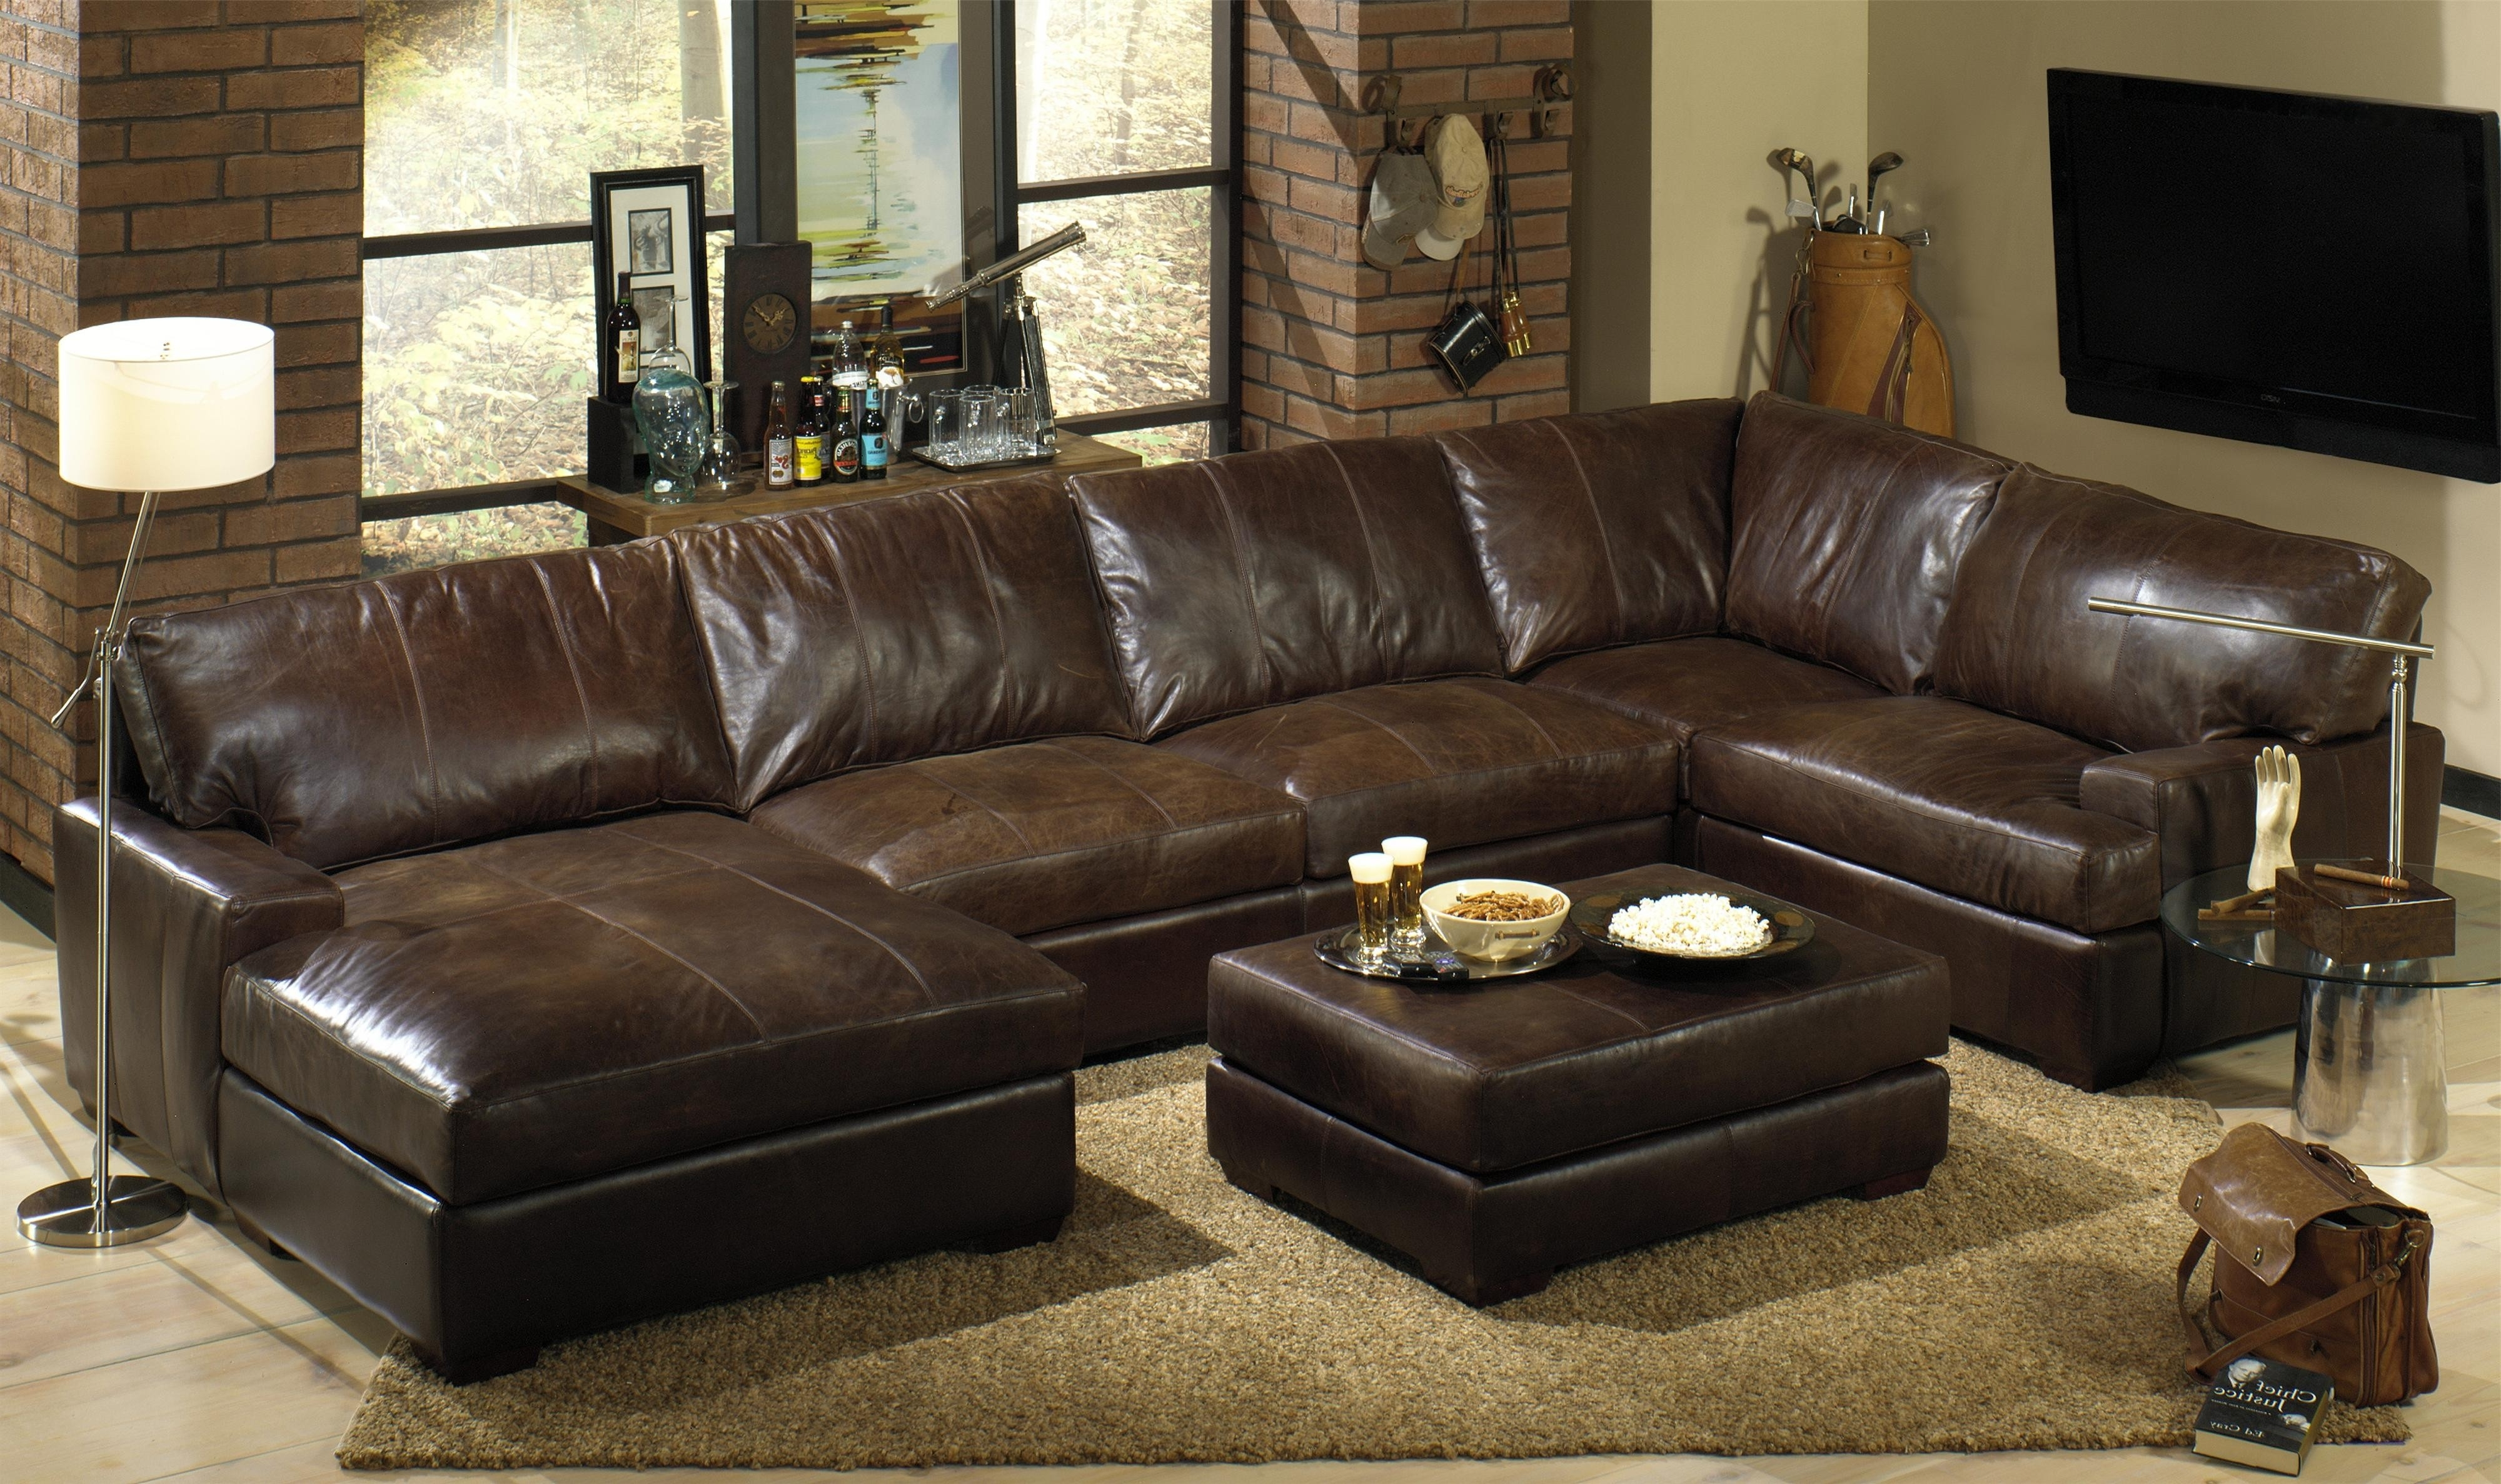 Luxury Brown Sectional Sofa With Chaise – Buildsimplehome With Regard To Most Current Chocolate Brown Sectional Sofas (View 15 of 20)